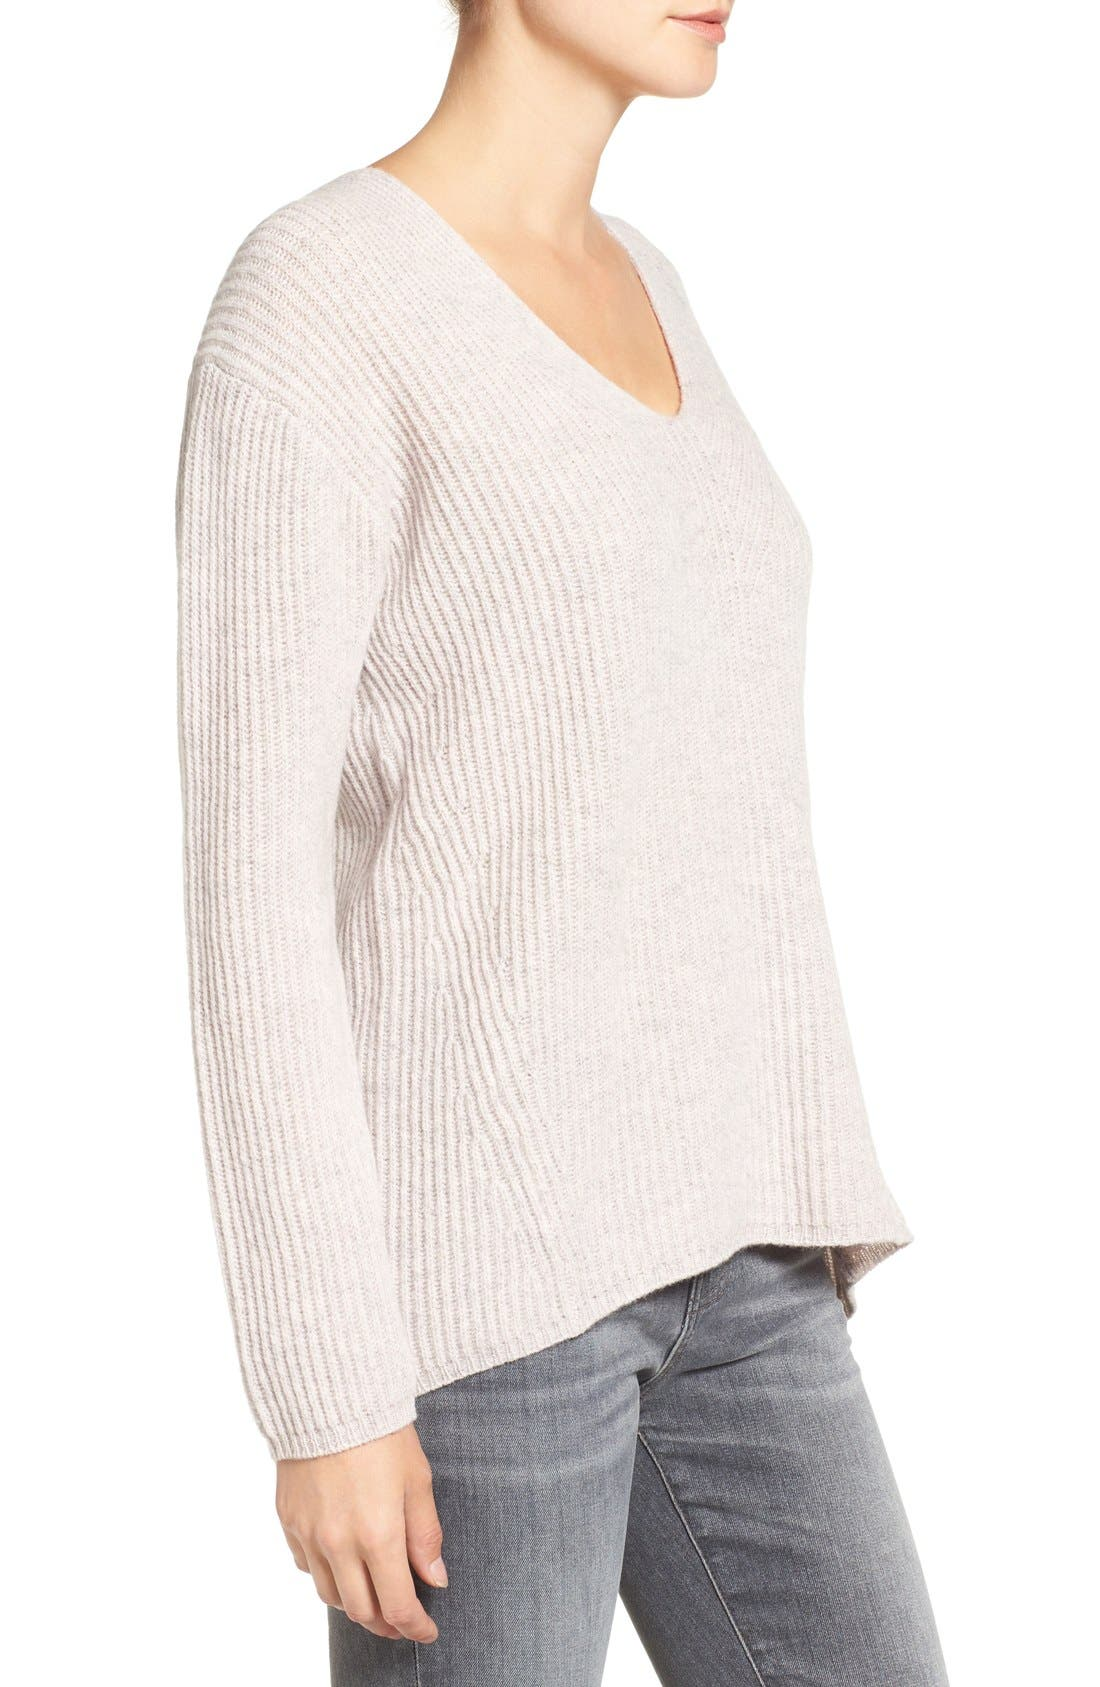 Woodside Pullover Sweater,                             Alternate thumbnail 27, color,